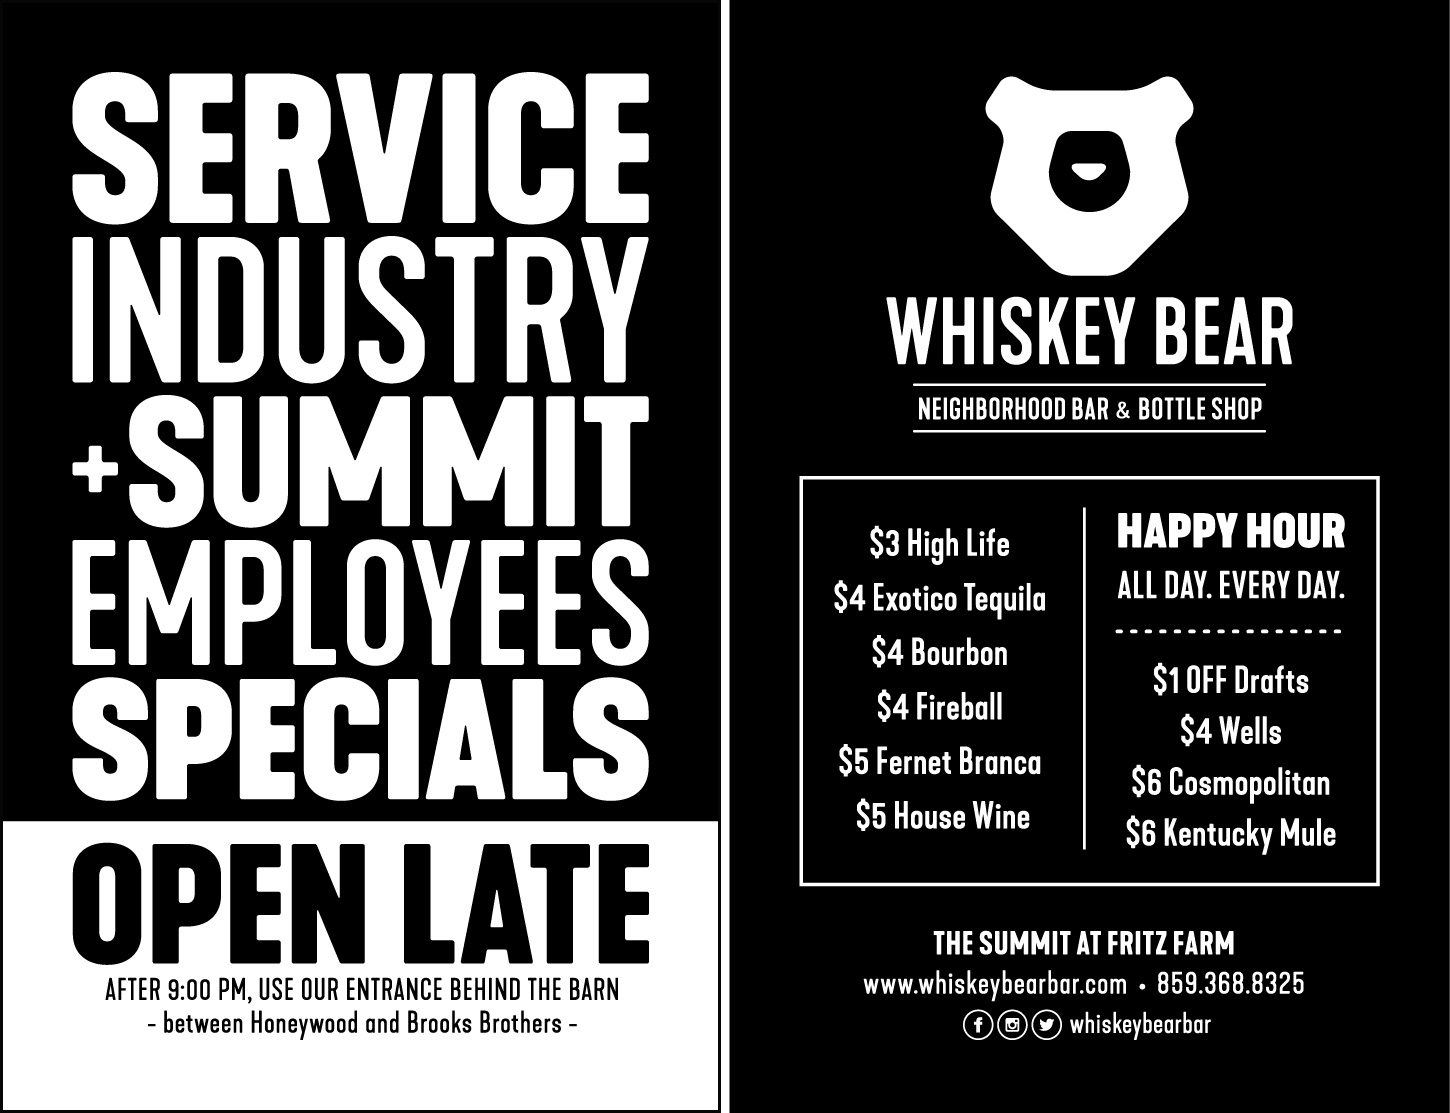 Service Industry + Summit Employees Specials